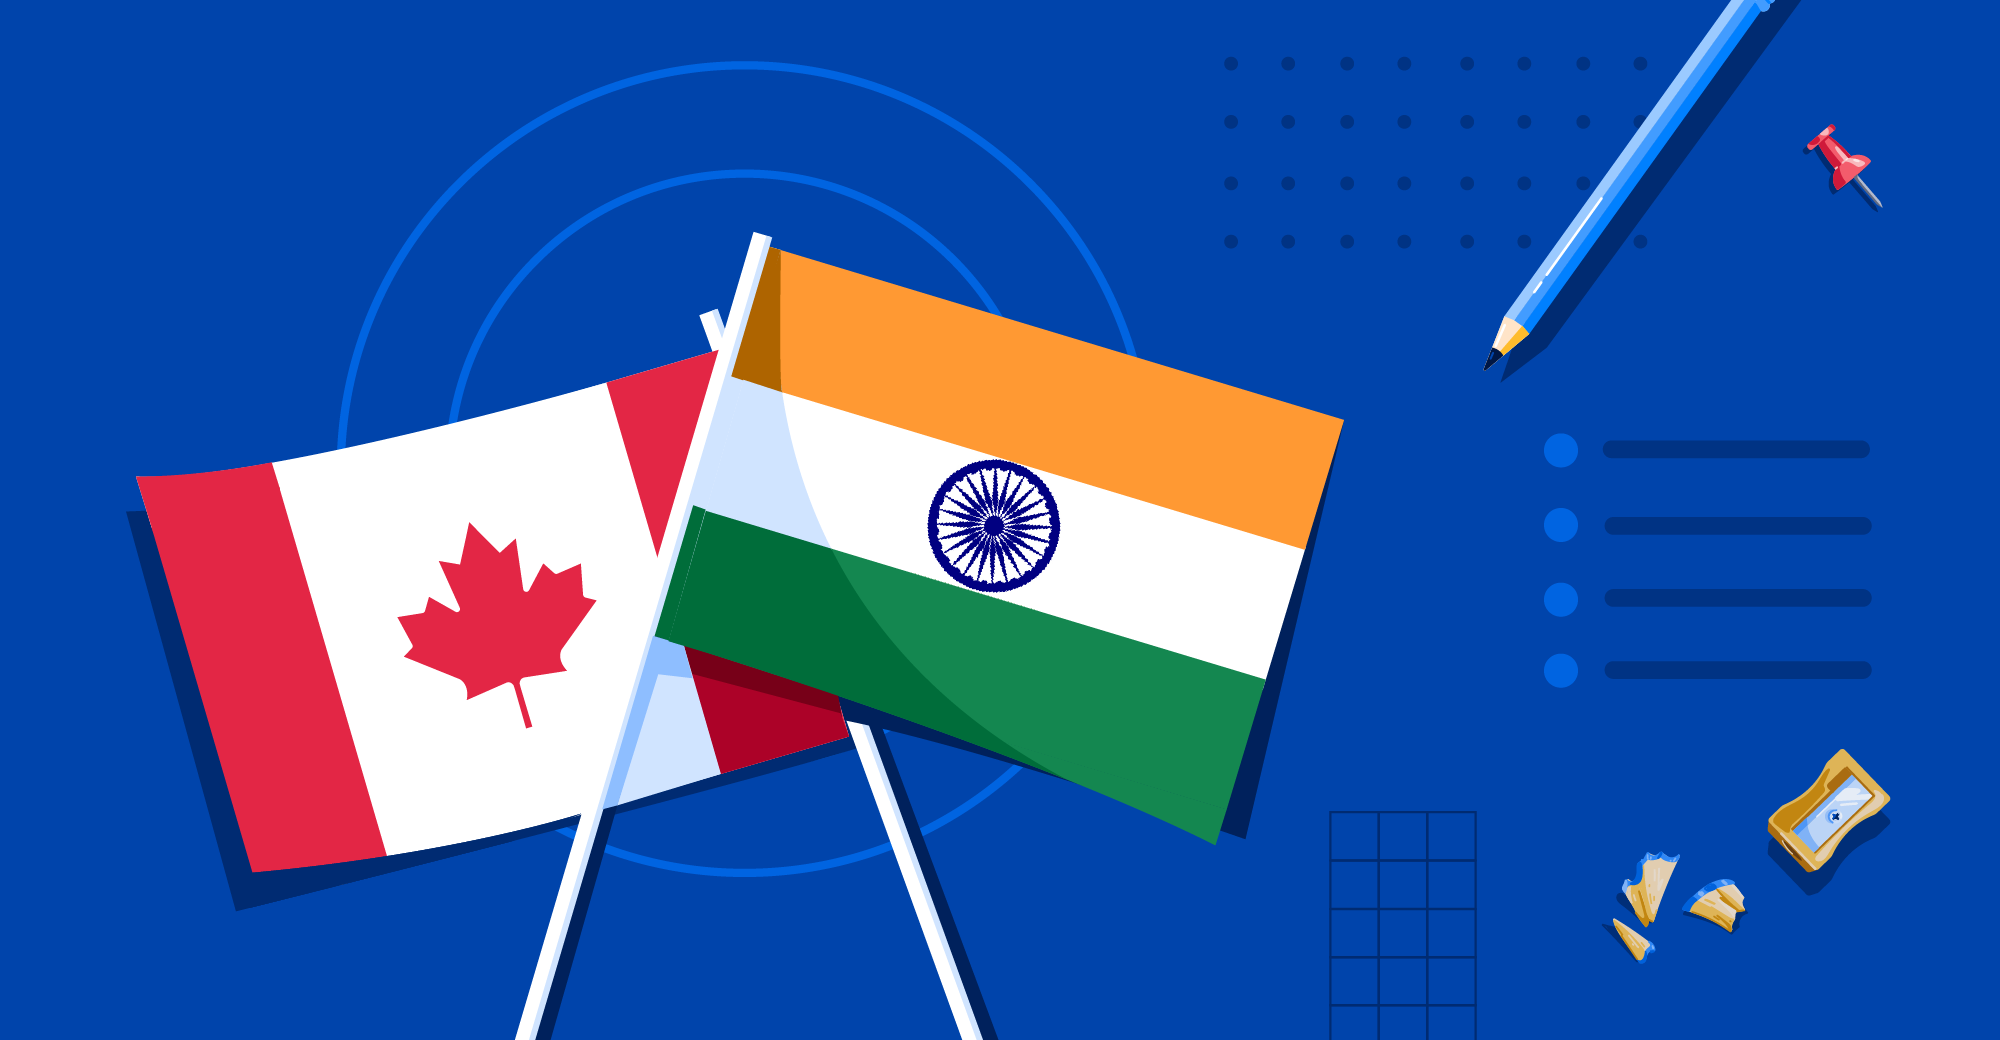 Illustration of Canada and India flags